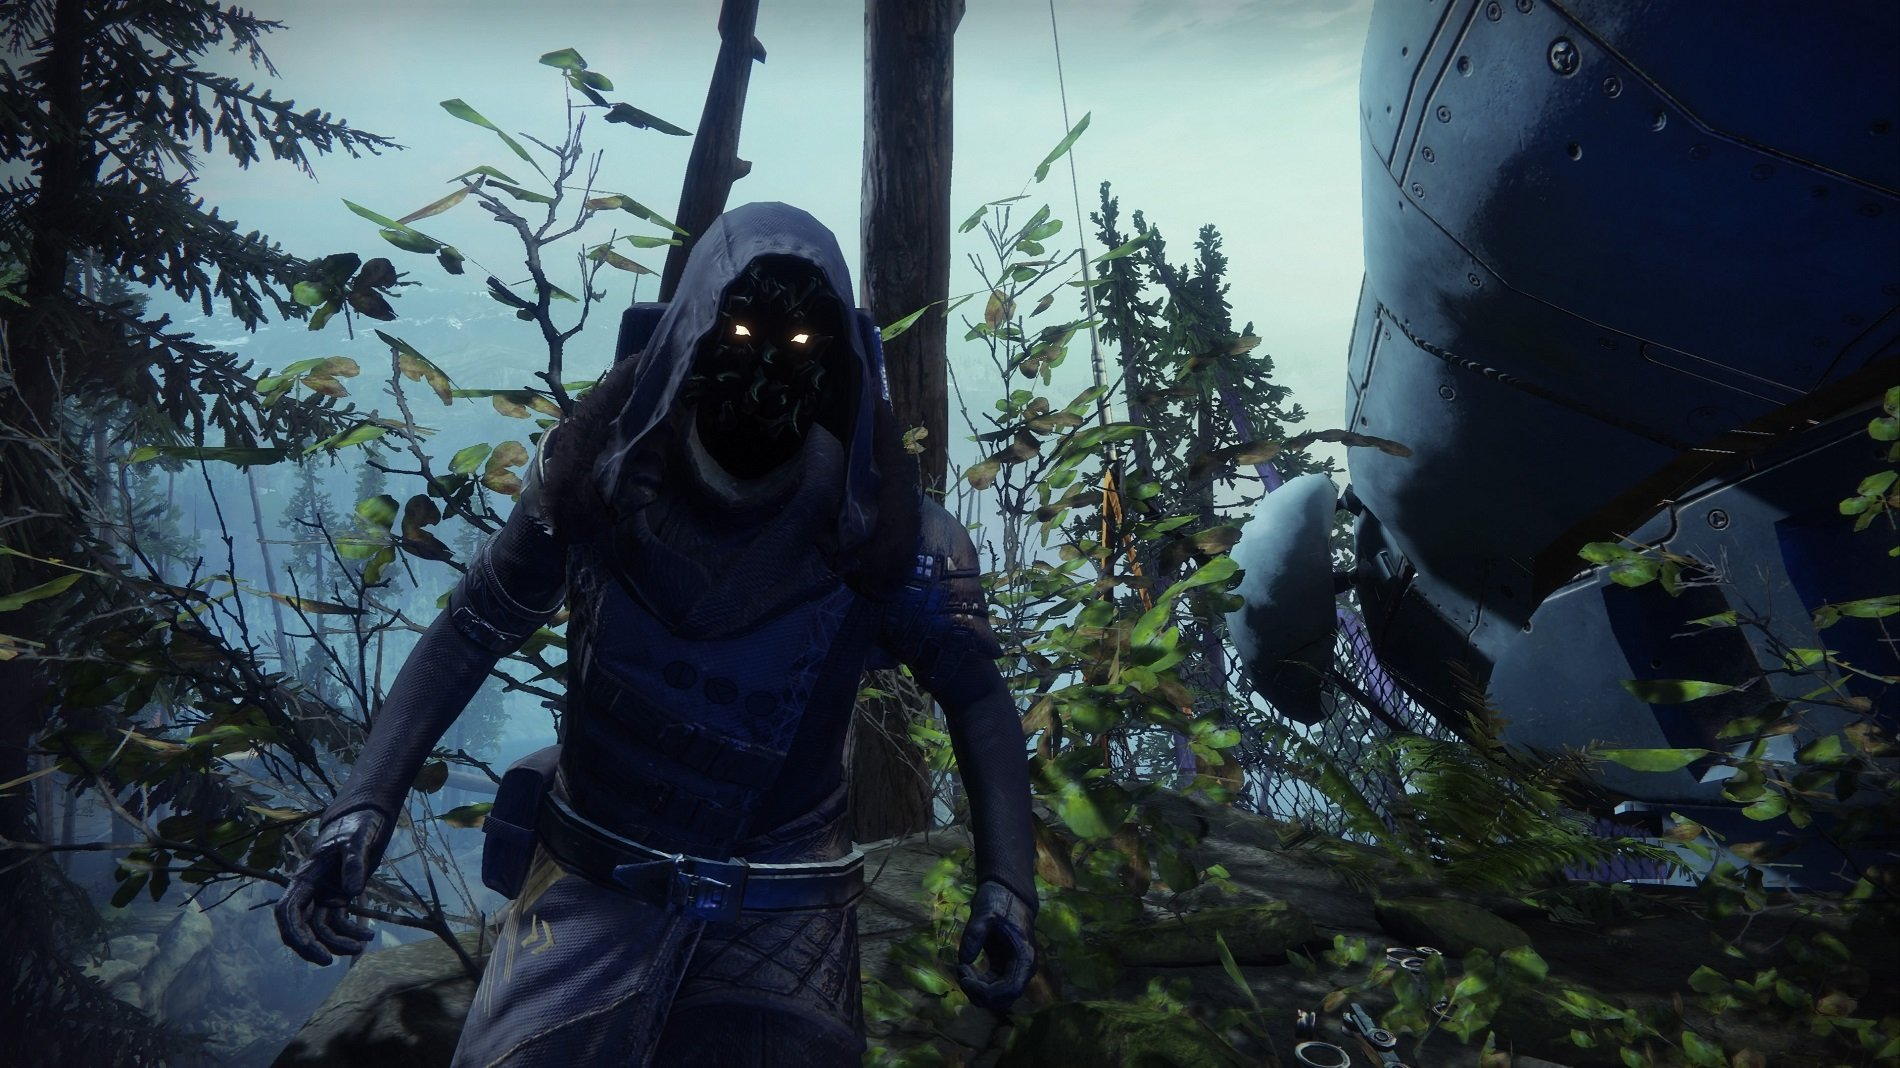 Where to find Xur in Destiny 2 - February 21, 2020